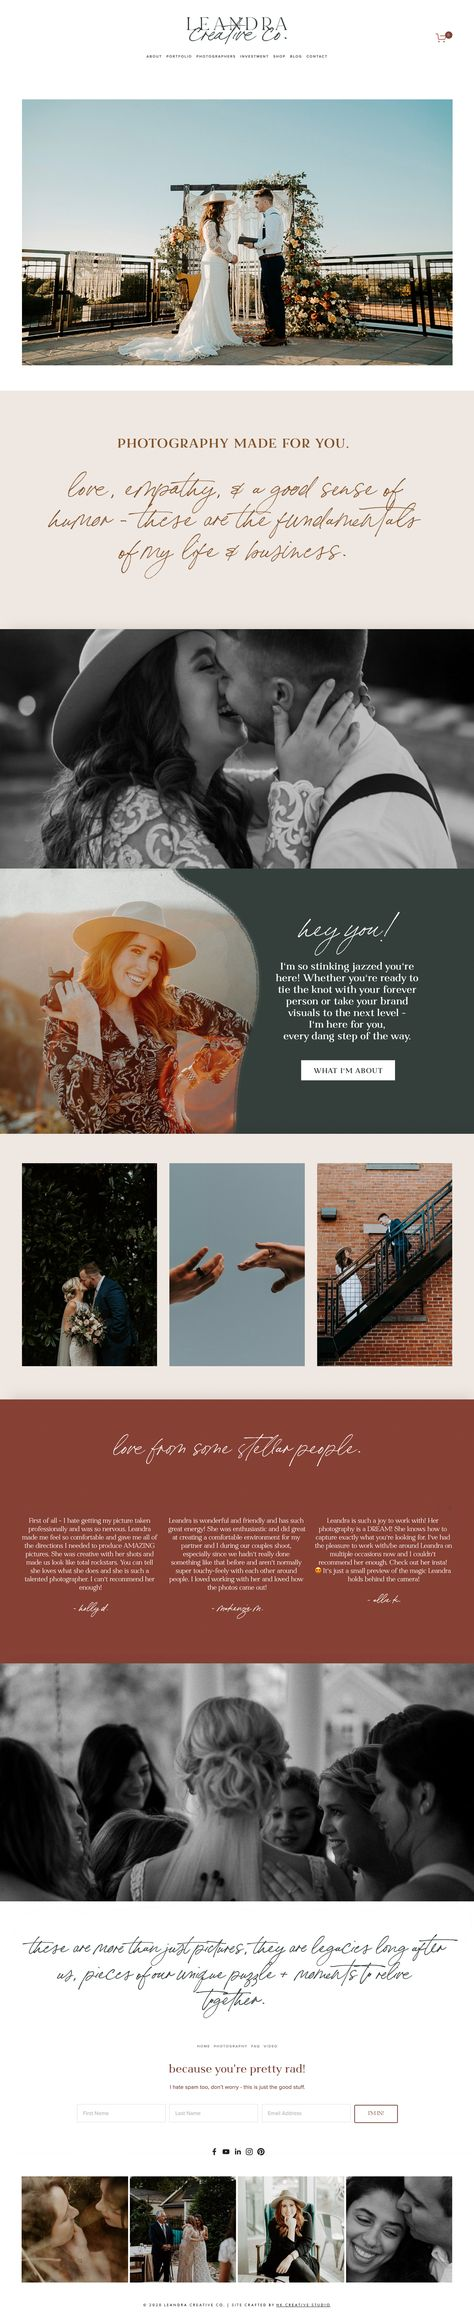 A custom photography Squarespace website design for a wedding photographer, Leandra Creative Co., based in North Carolina. The web design layout features imagery, package options, photography portfolio and client reviews. #webdesignlayout #websitetemplates #weddingphotographer #weddingwebsite